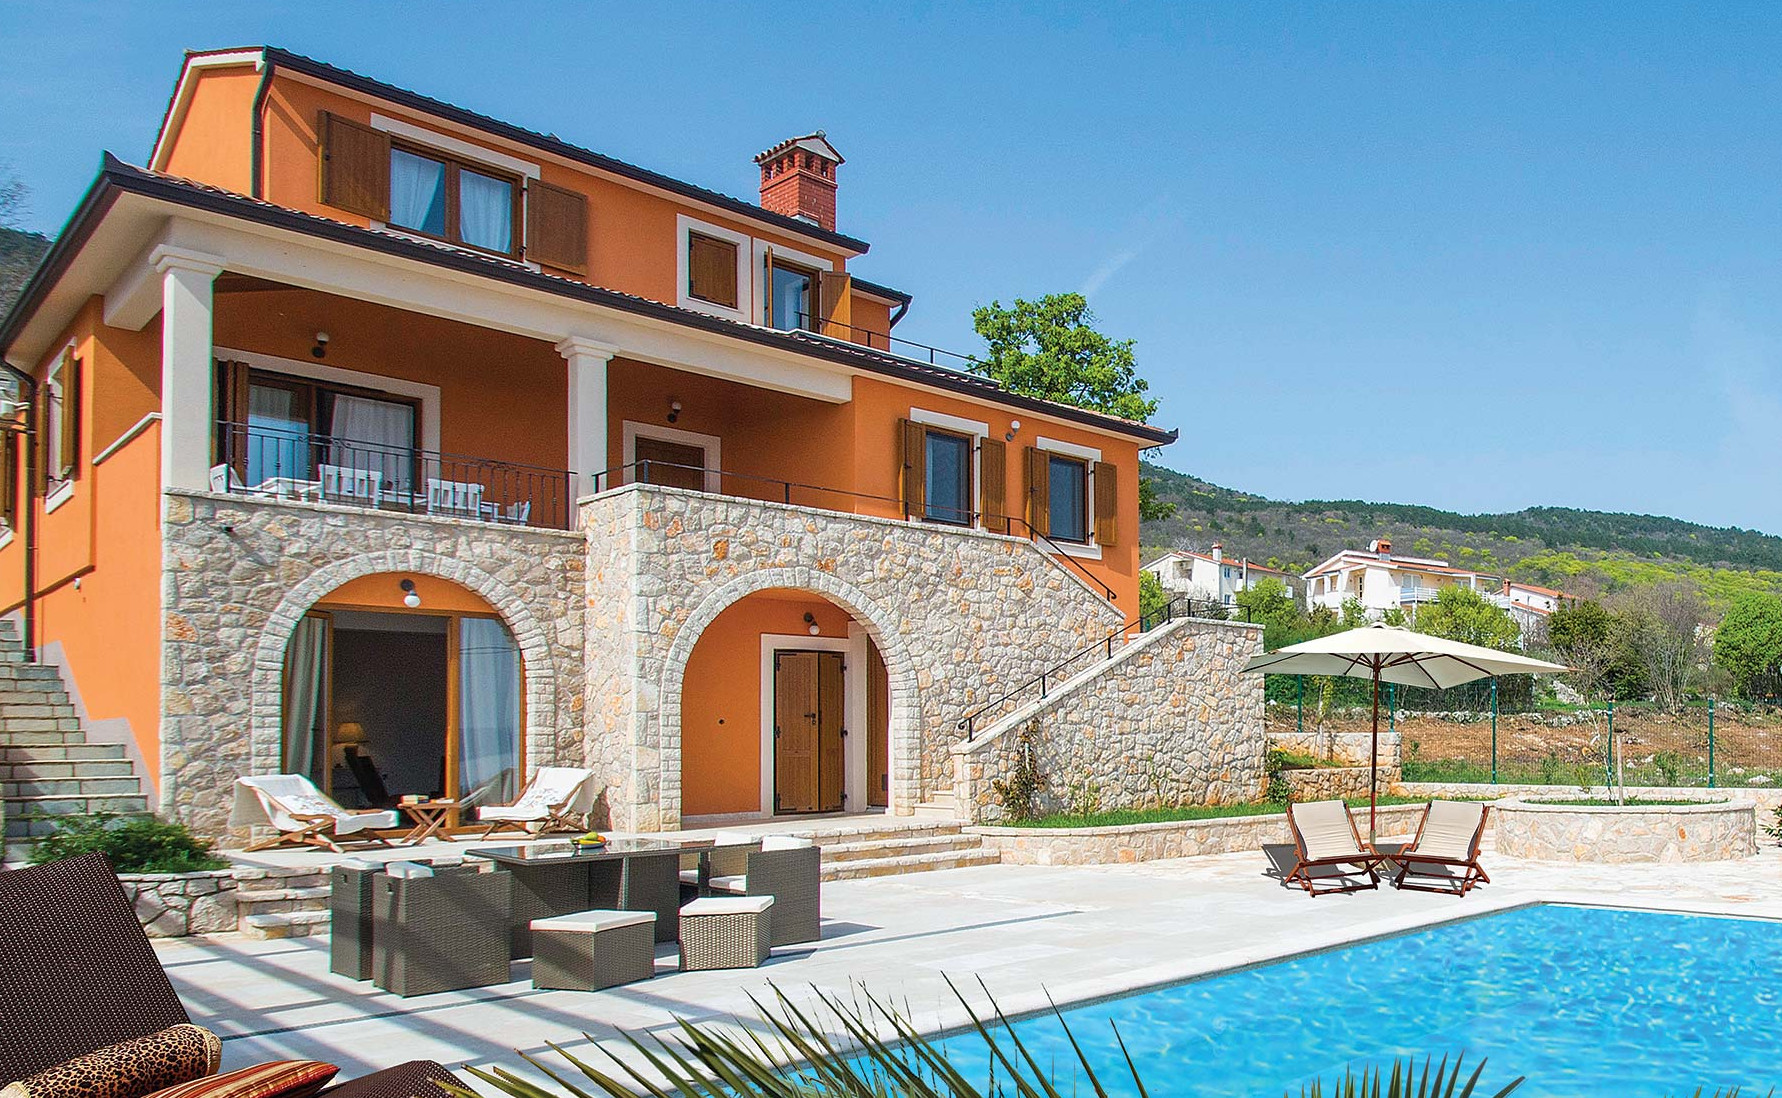 Villa La Beata in Istria, Croatia